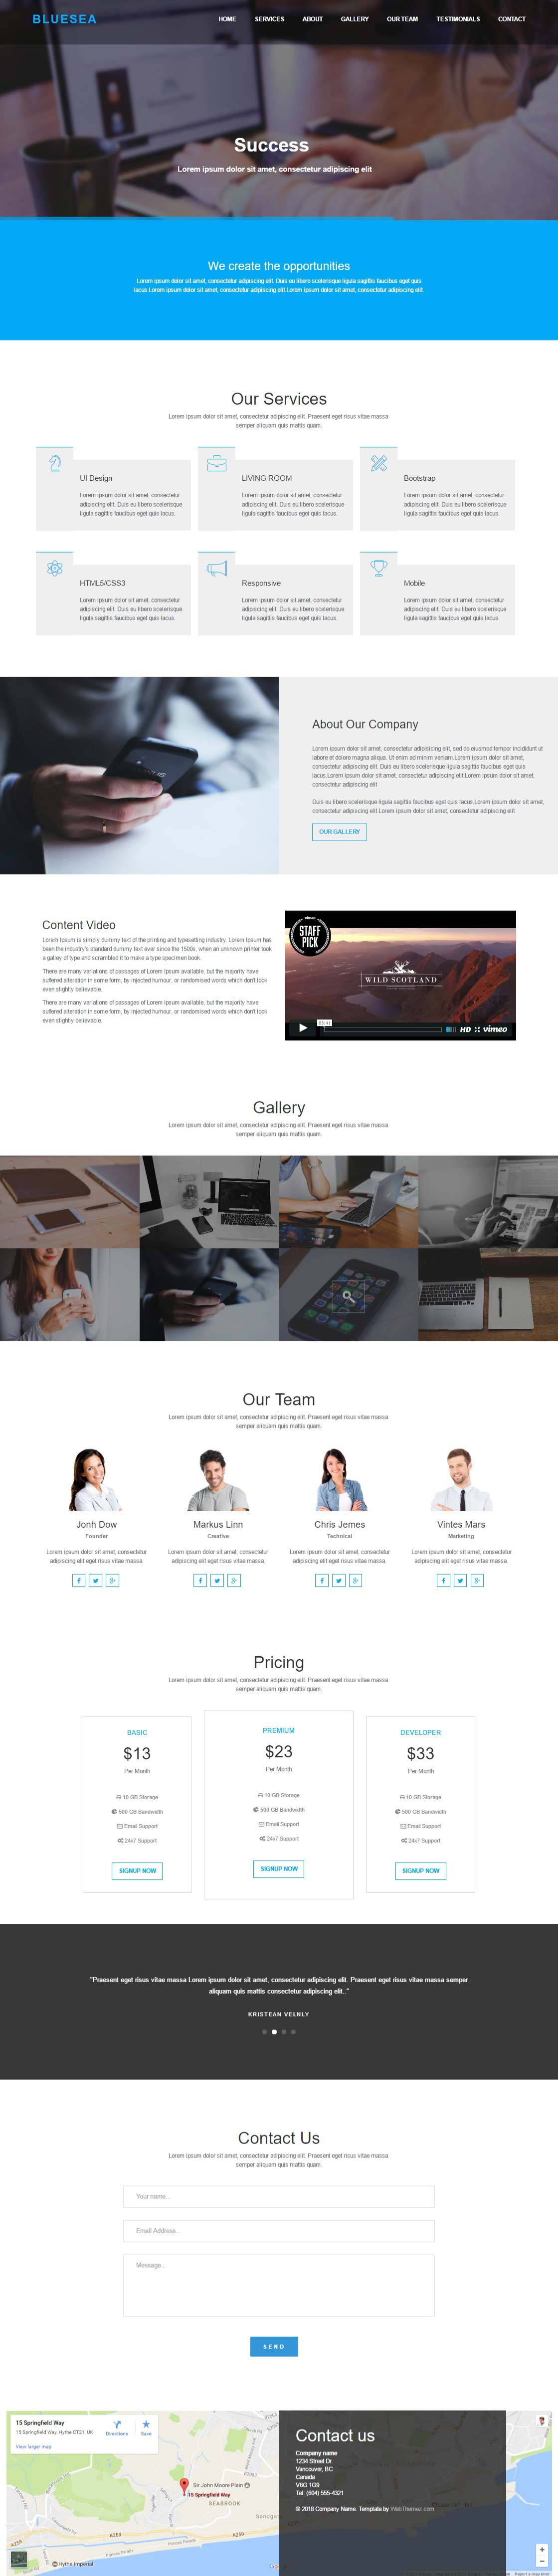 Bluesea Corporate Bootstrap HTML Website Template